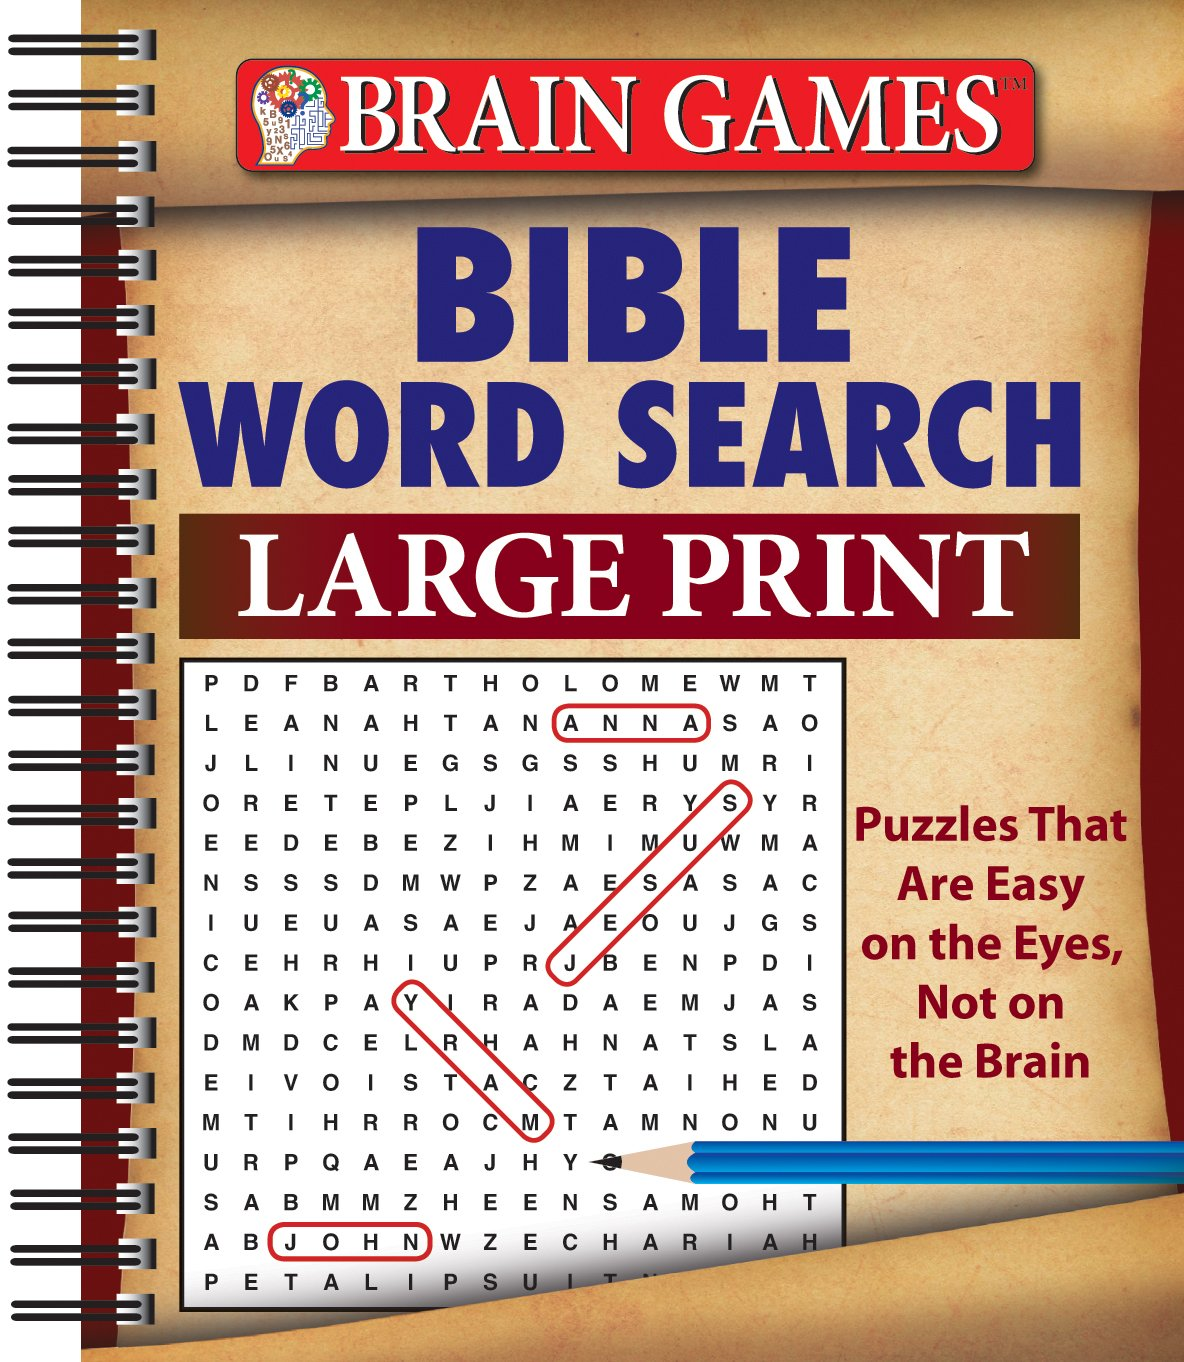 brain games bible word search large print editors of